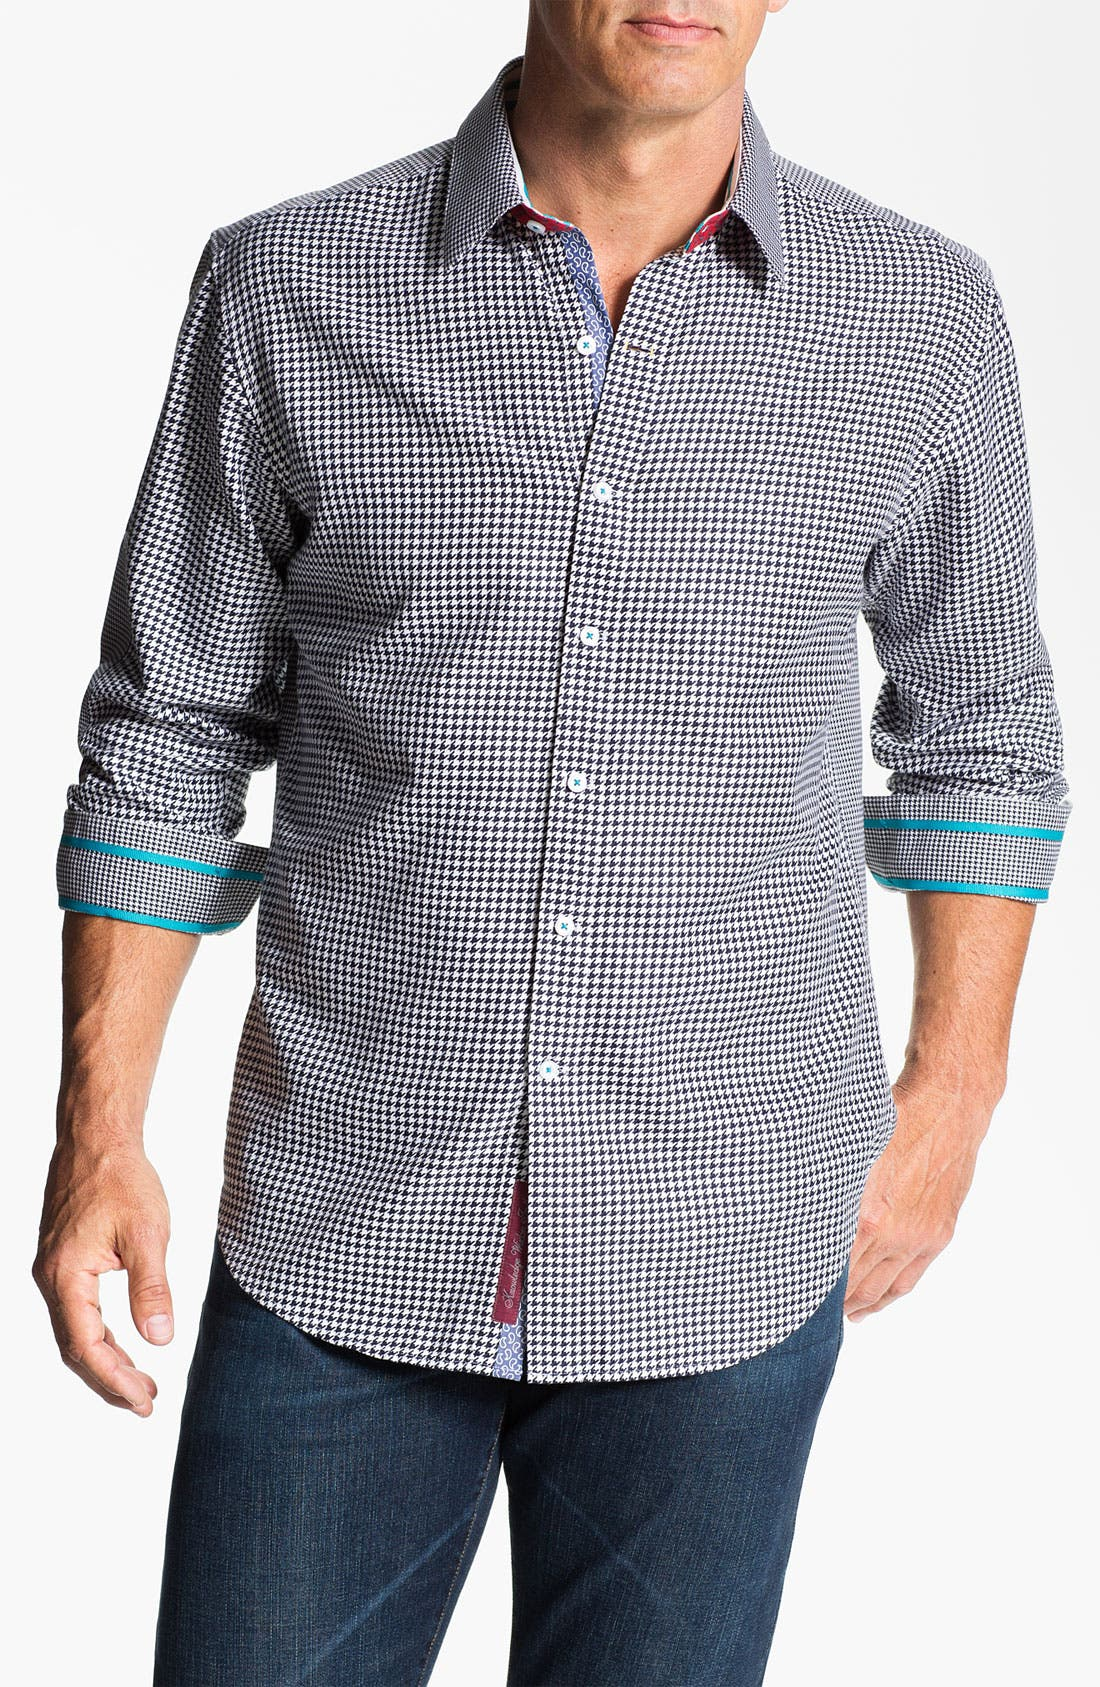 Alternate Image 1 Selected - Robert Graham 'Puckle' Sport Shirt